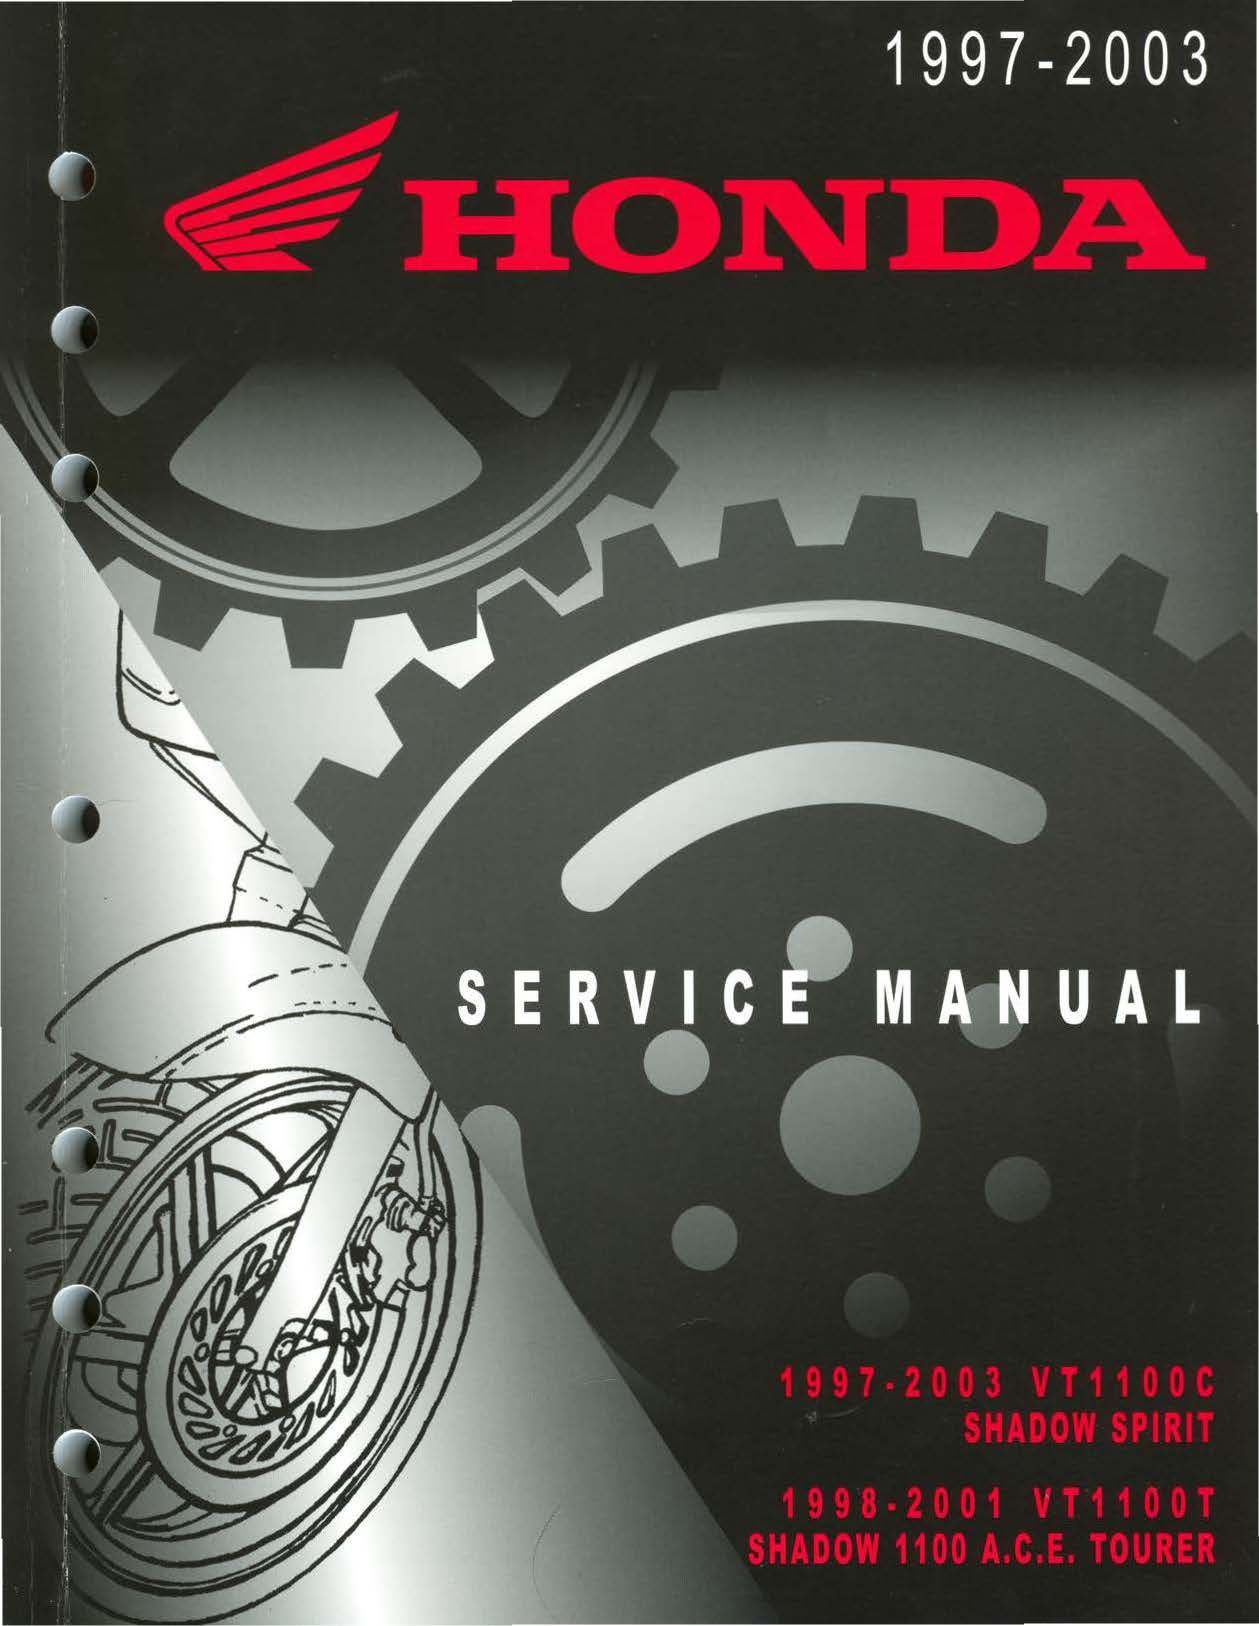 Workshop manual for Honda VT1100C Shadow (1997-2003)